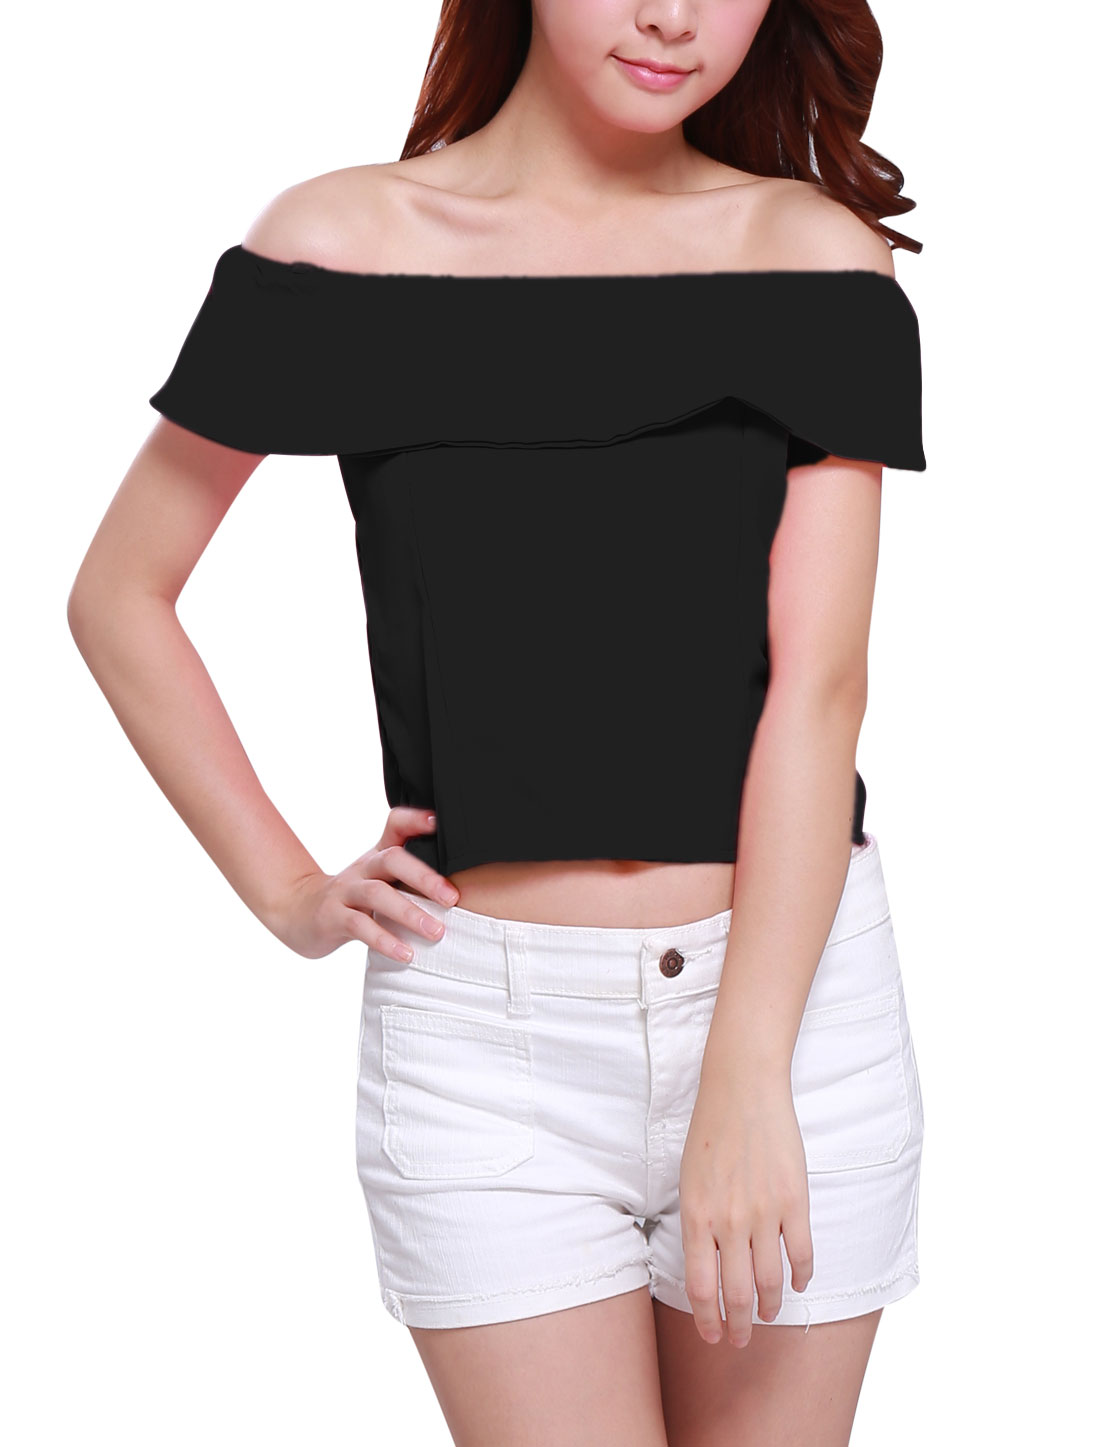 Women Elegant Off Shoulder Sleeveless Ruffled Upper Cropped Top Black XS